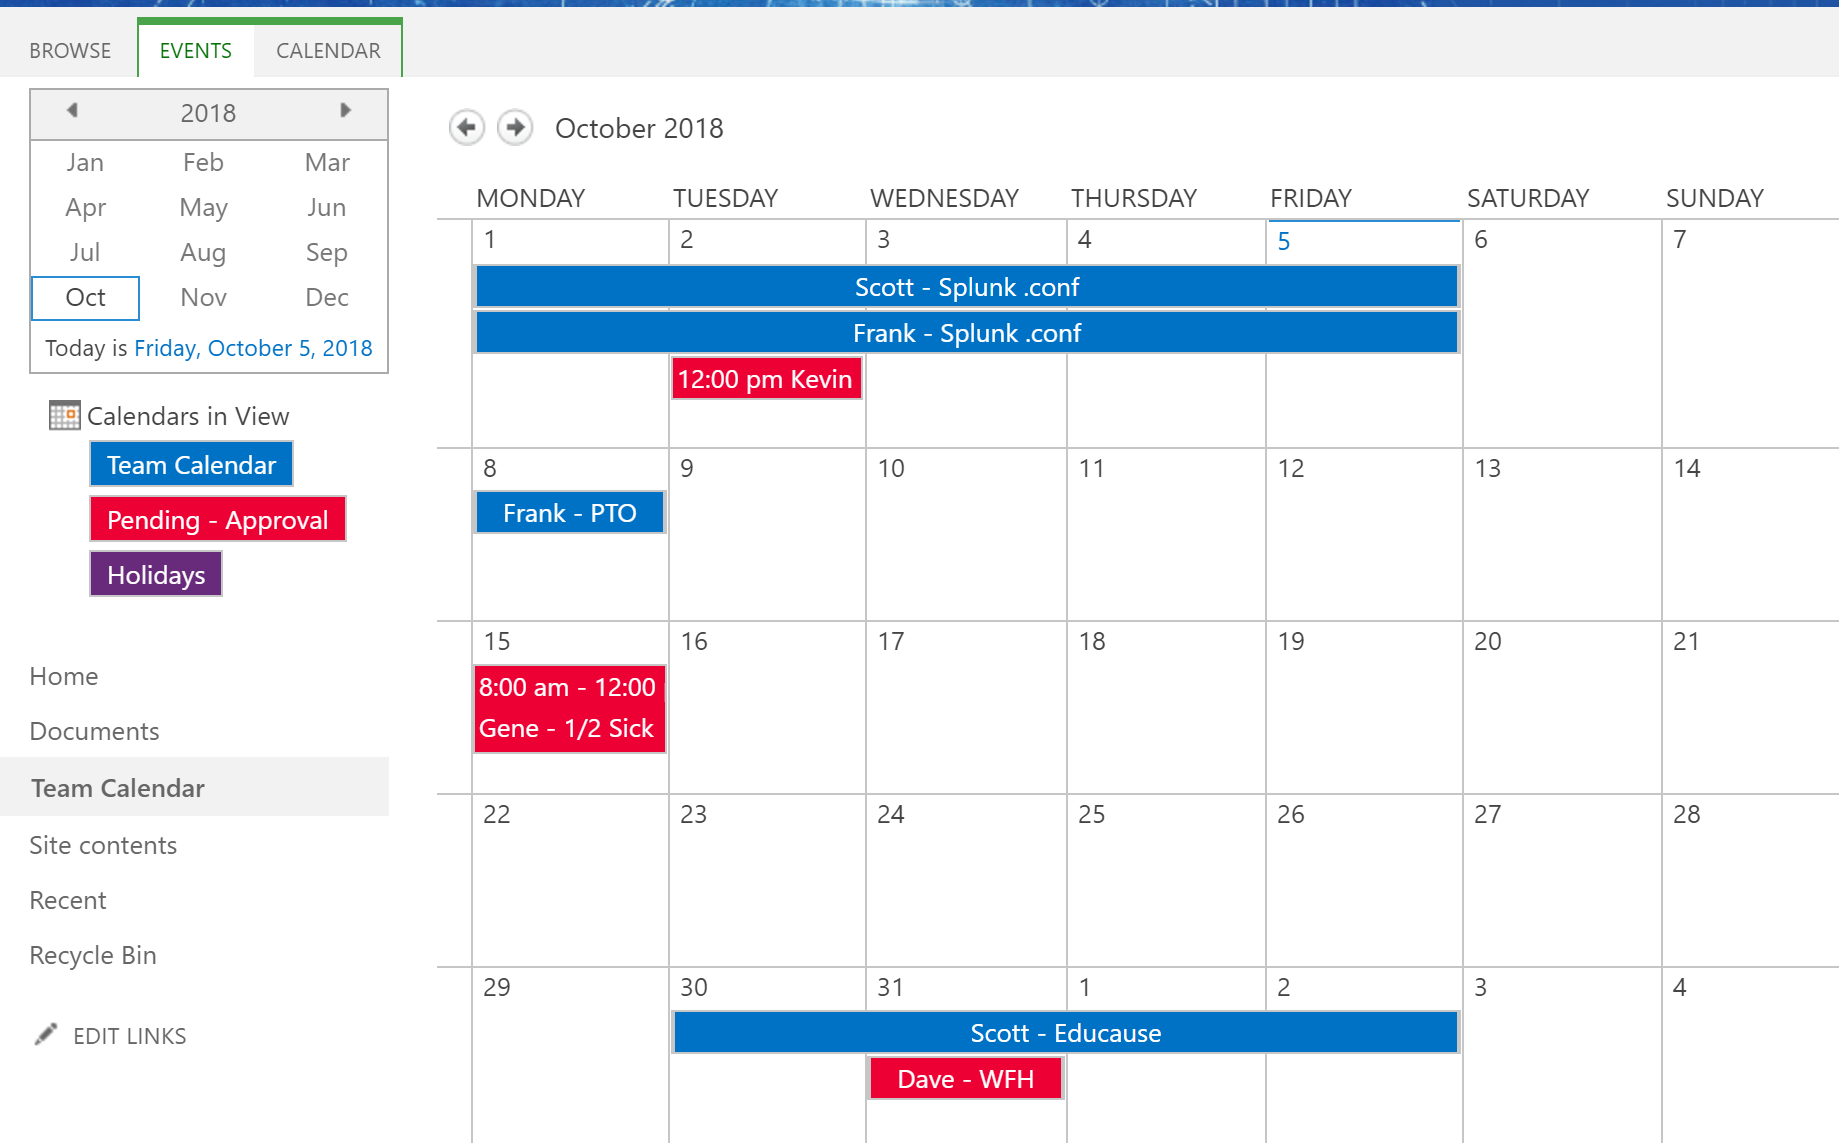 calendar that can be shared and edited